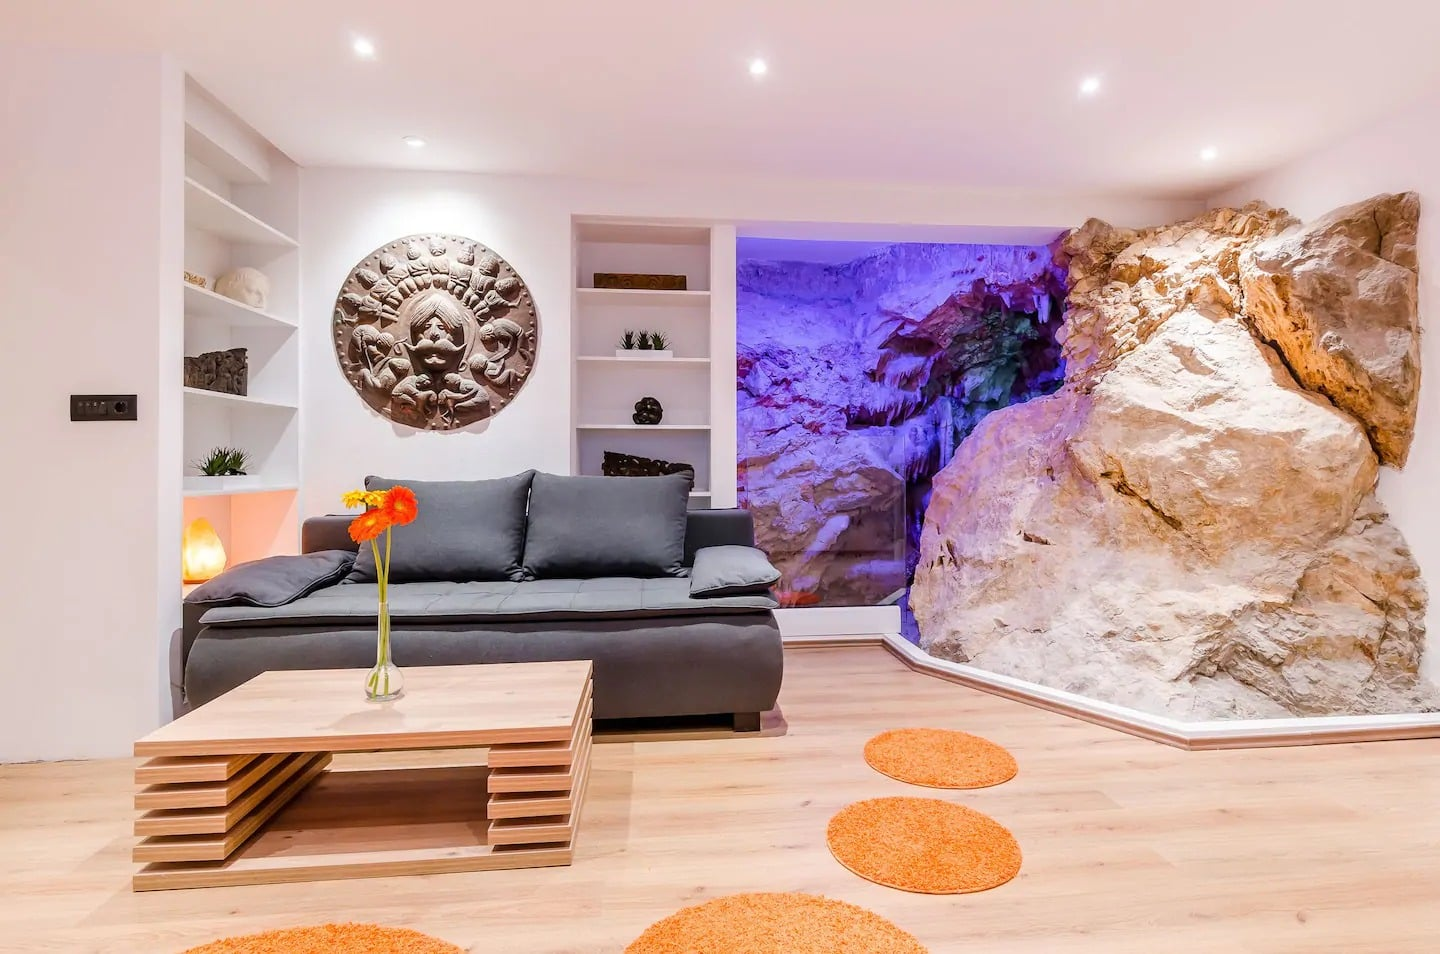 Dubrovnik Cave Apartment, close to beach+parking Airbnb Dubrovnik